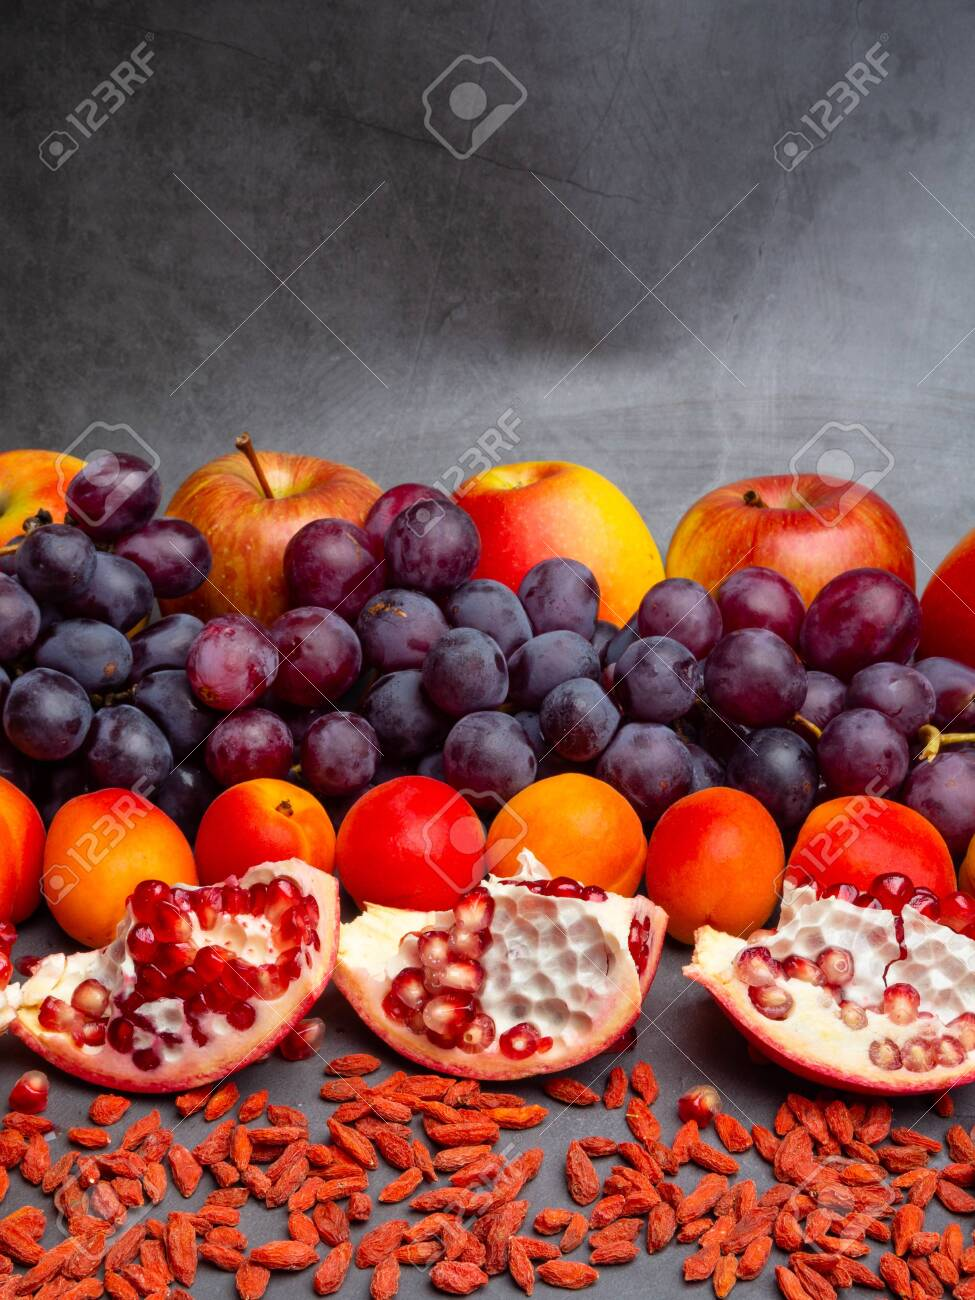 Mix Of Fresh Fruits And Berries Rich With Resveratrol Raw Food Stock Photo Picture And Royalty Free Image Image 123707947